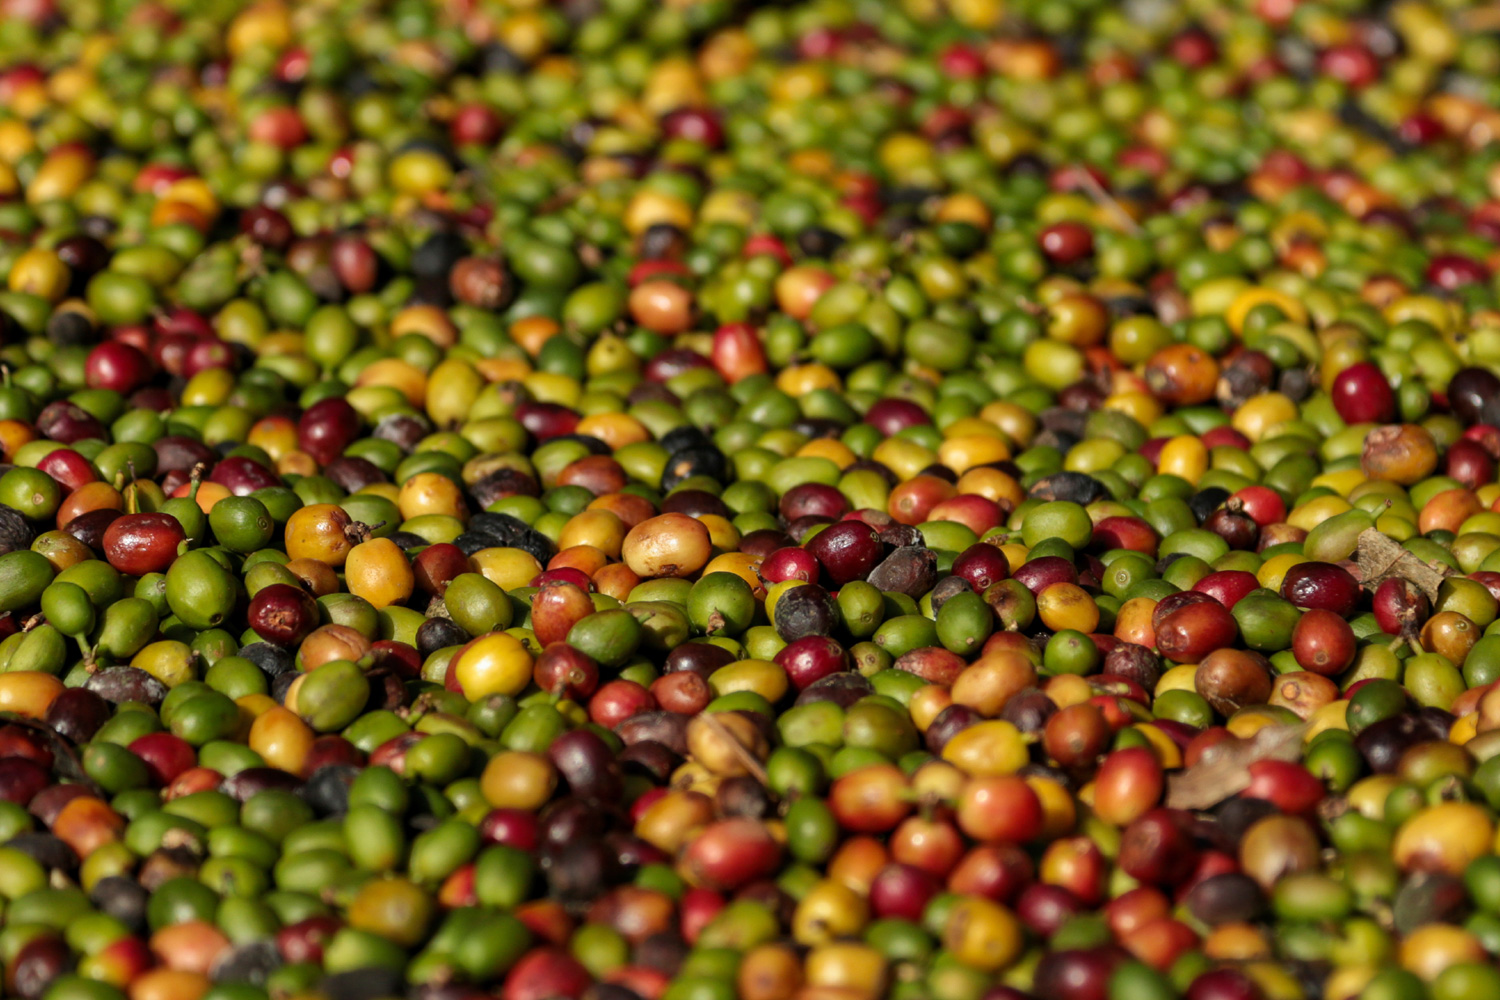 red-bean-coffee-production-04.jpg